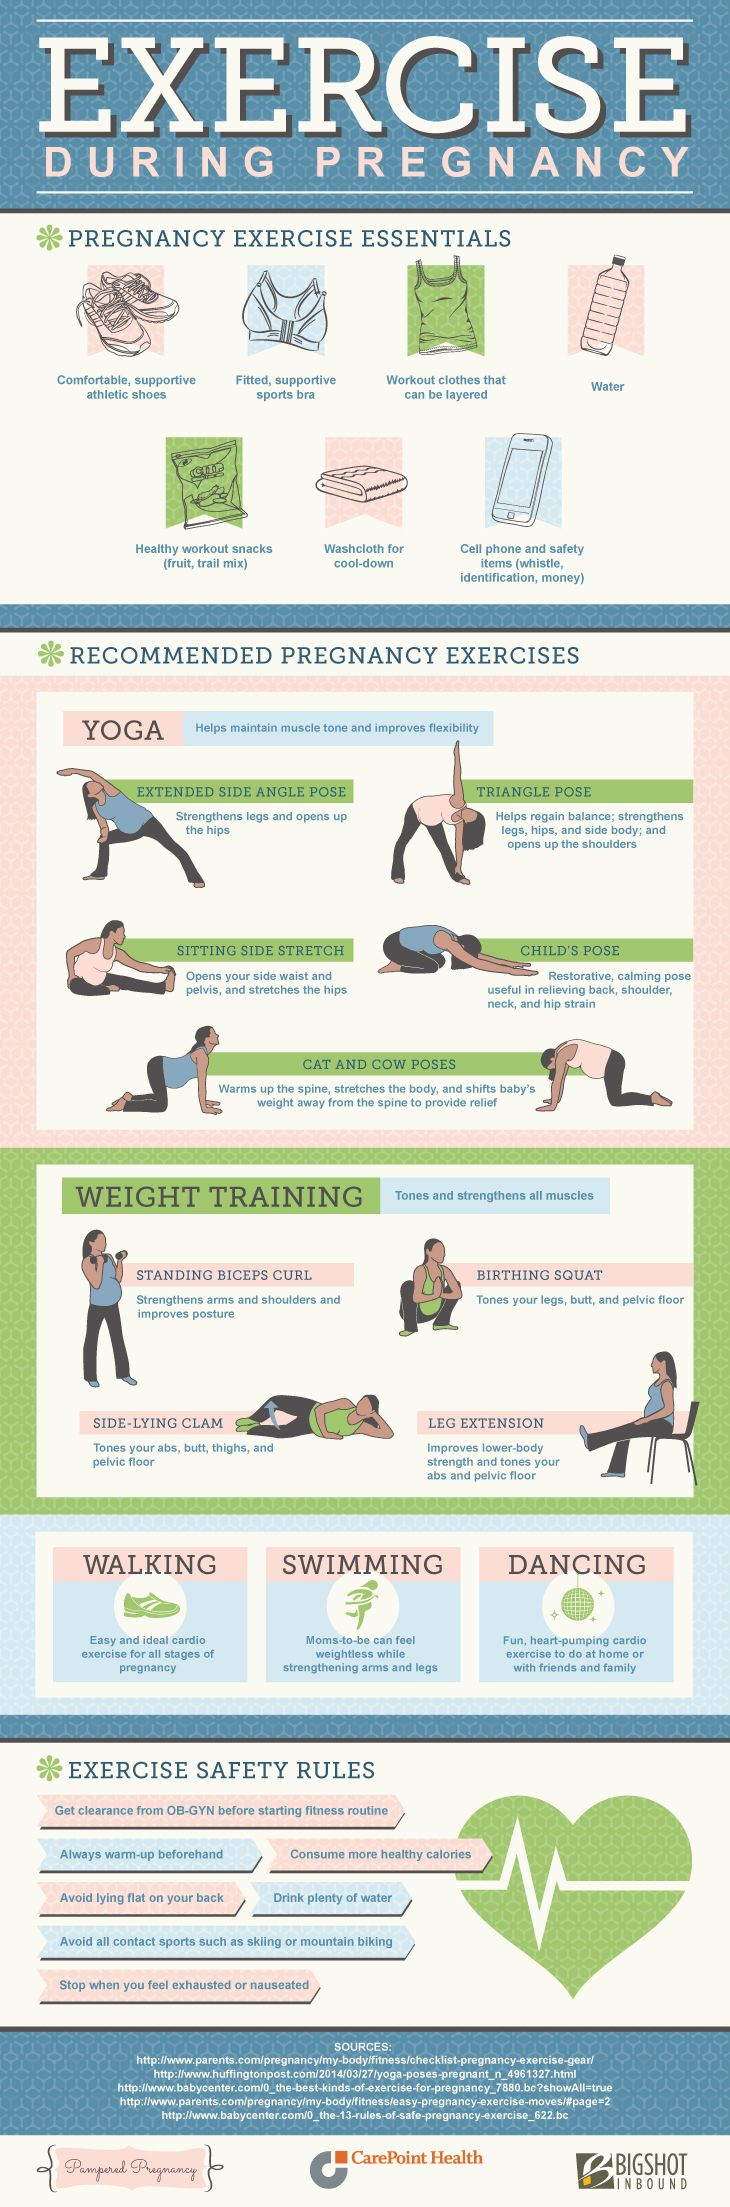 Exercise during pregnancy is associated with multiple ...